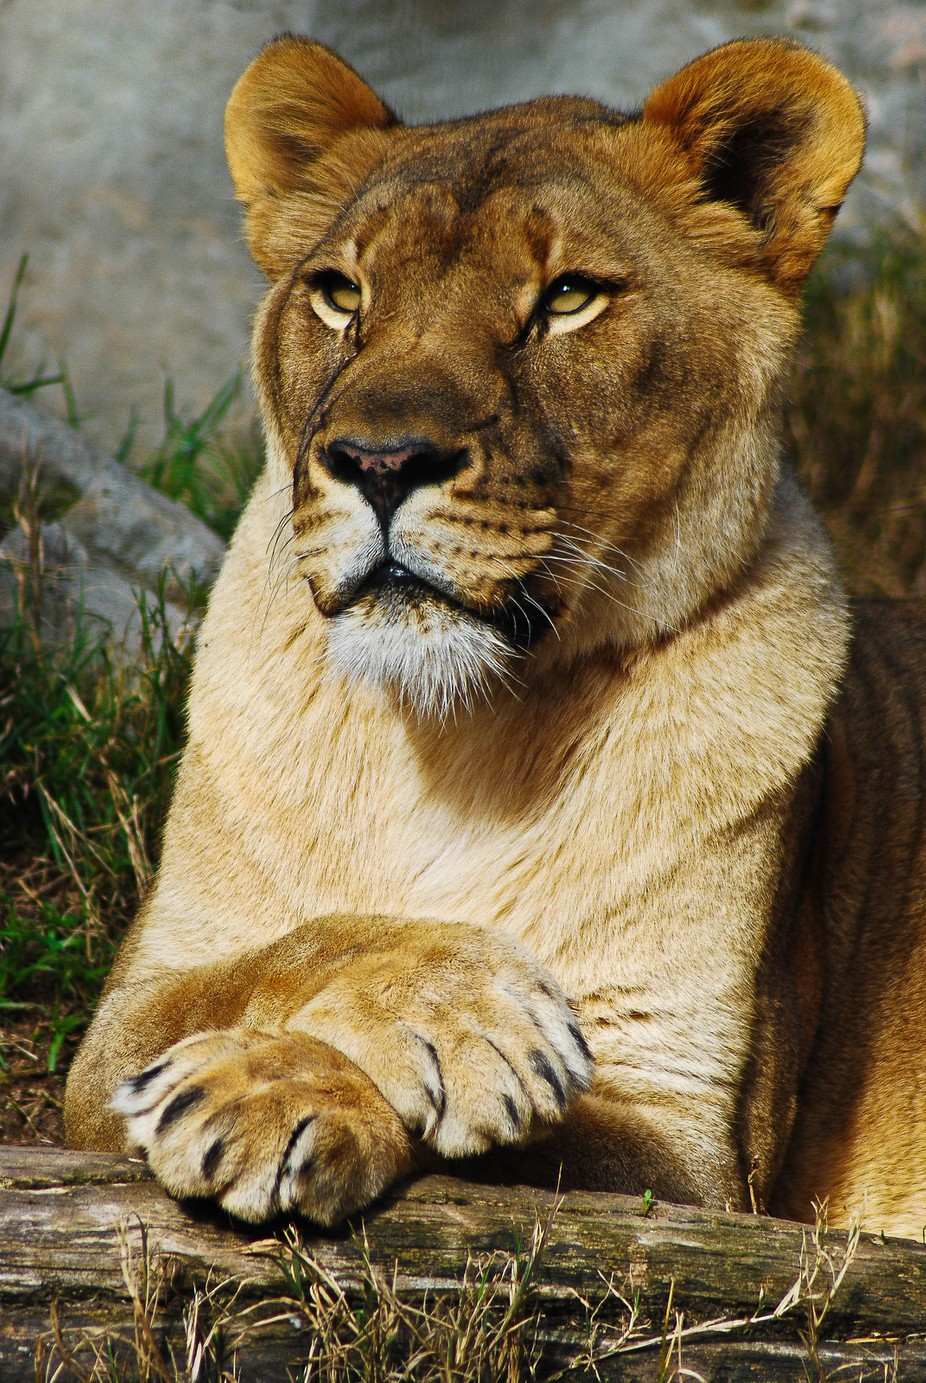 Lioness belongs to Animals